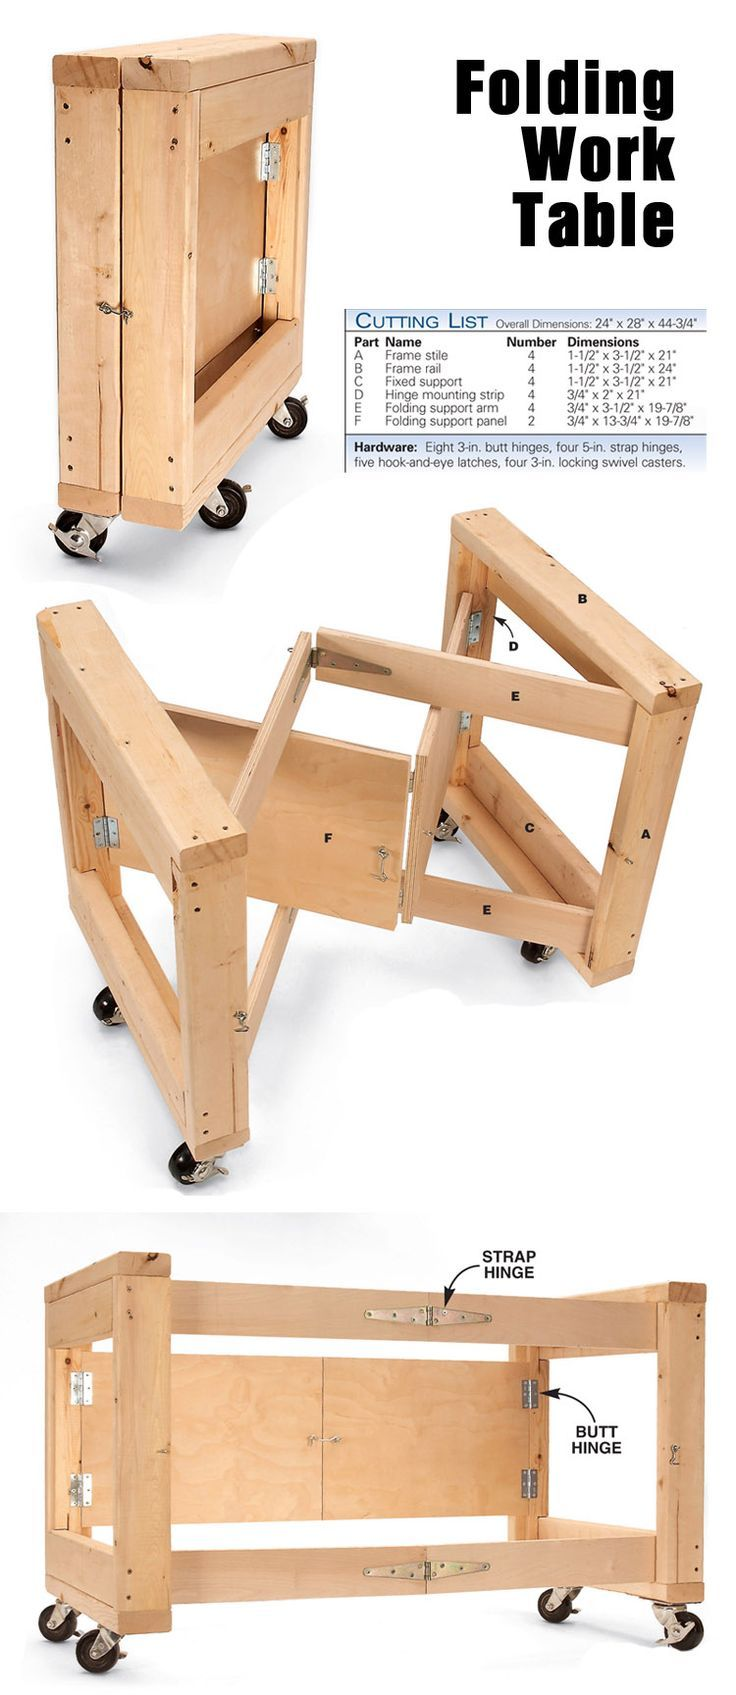 Space Saving Folding Work Table http://www.popularwoodworking.com/projects/aw-extra-4512-folding-table-base:                                                                                                                                                                                 More